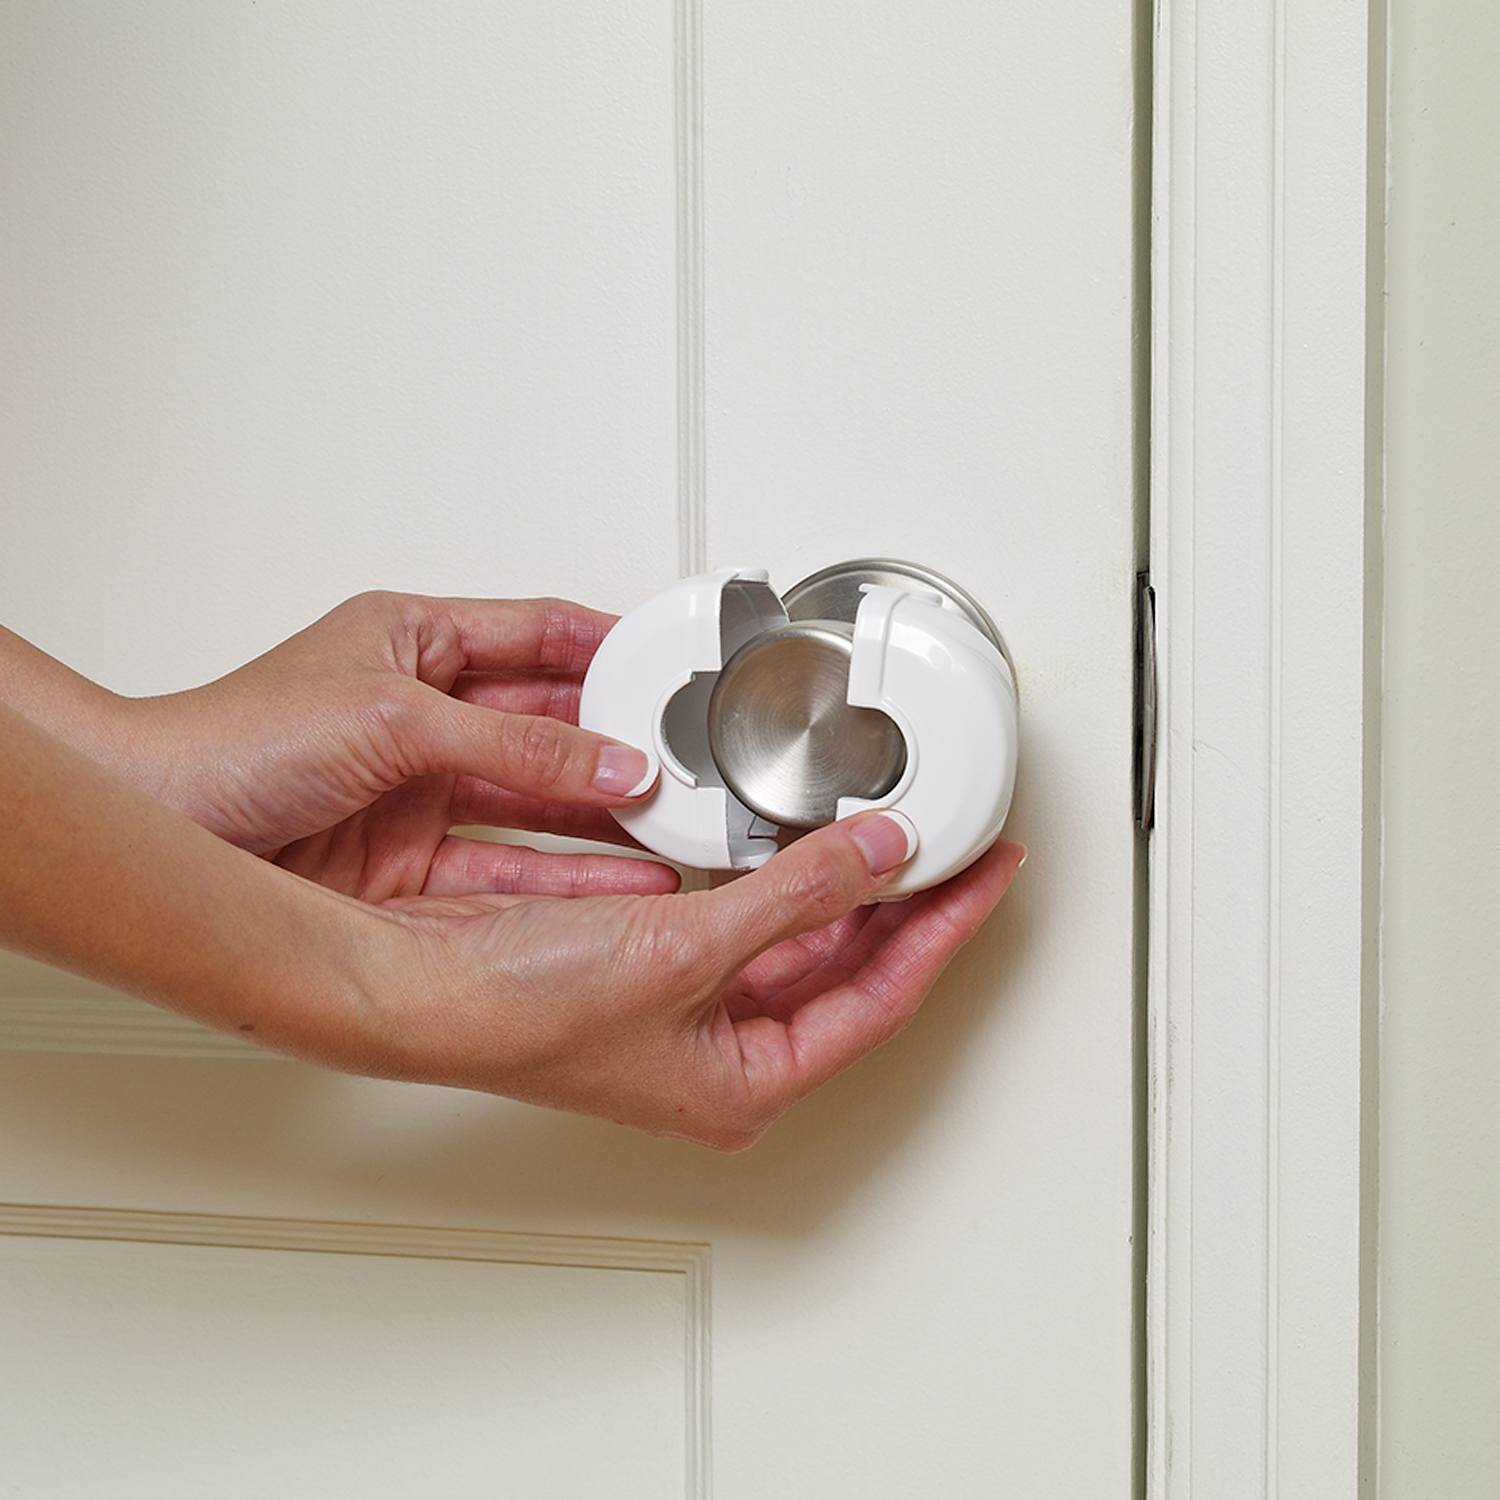 child safety door knob covers photo - 9